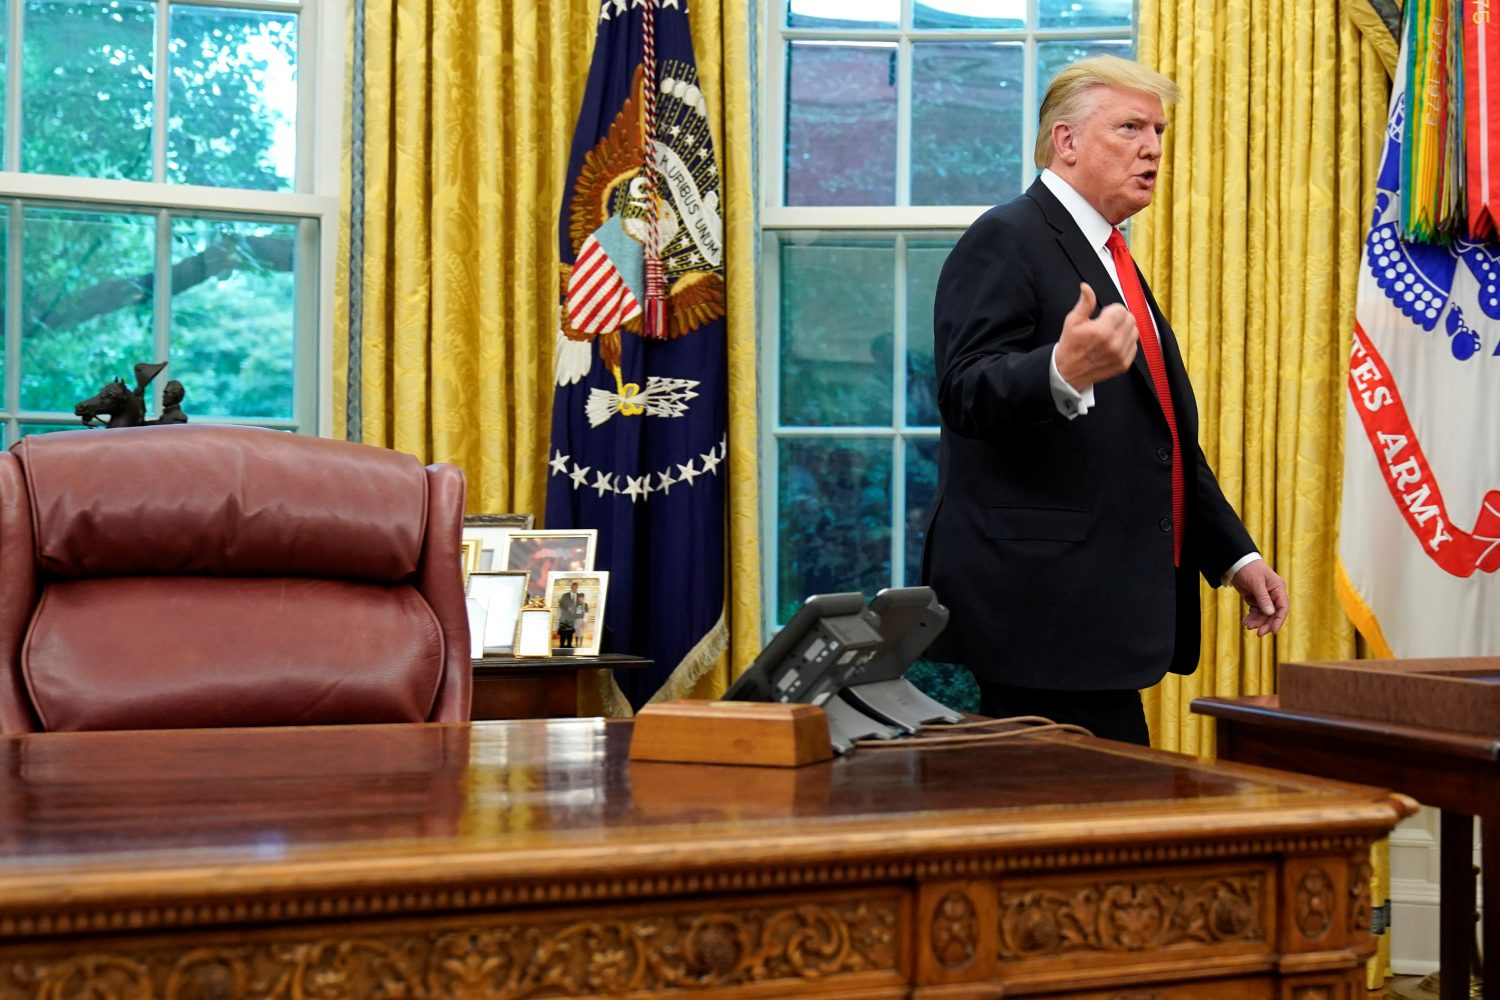 U.S. President Donald Trump departs after presenting NBA Hall of Fame player Jerry West with the Presidential Medal of Freedom in the Oval office of the White House in Washington, U.S., September 5, 2019. REUTERS/Joshua Roberts